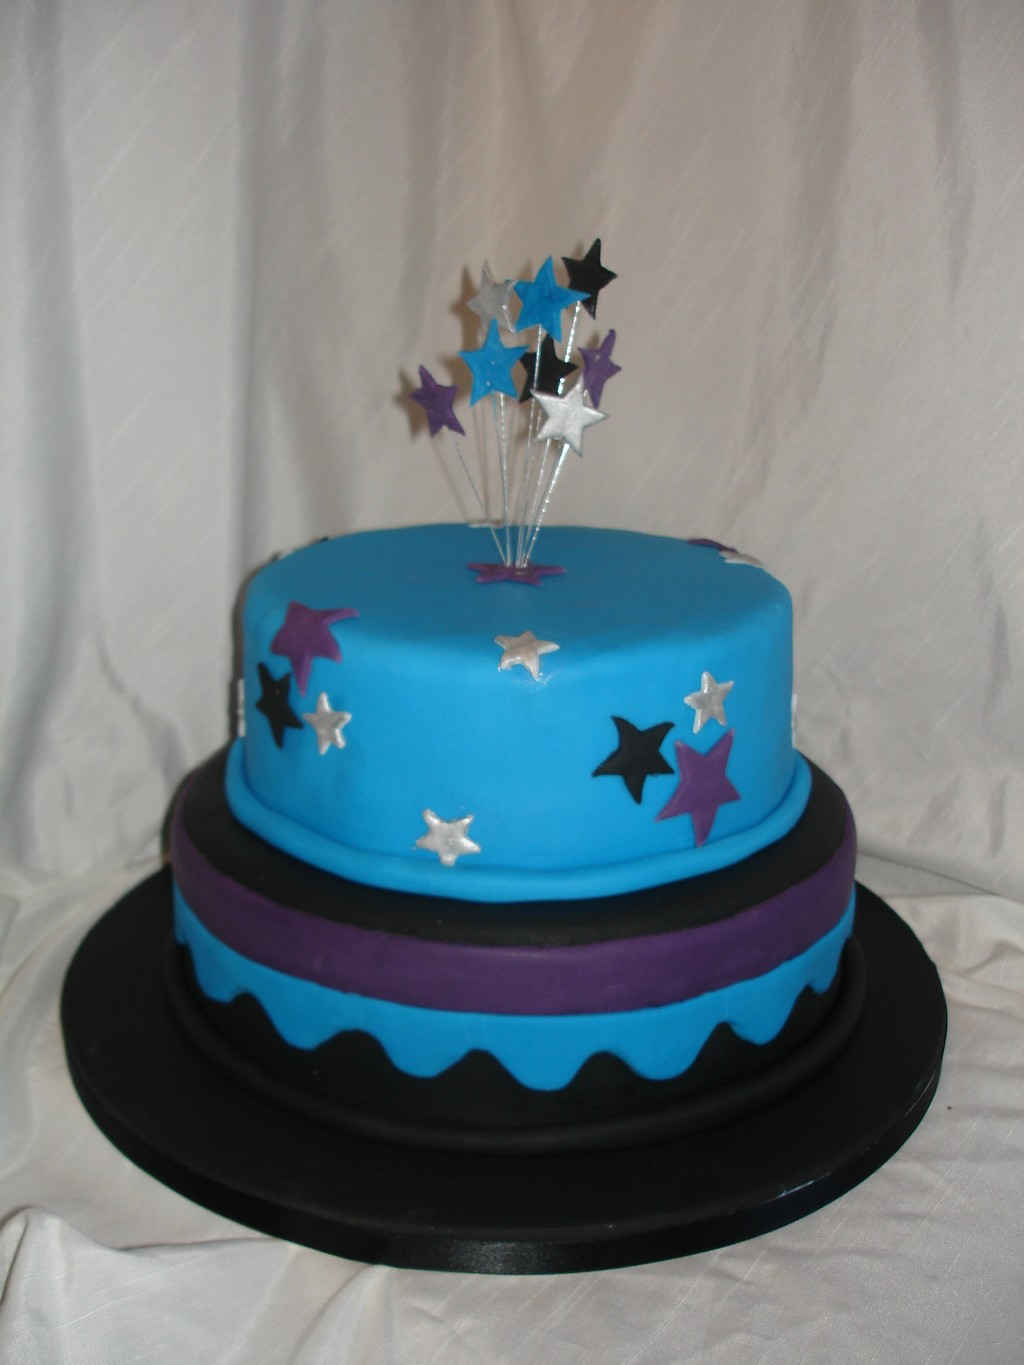 Two Tier Black Blue and Purple Starry Wedding Cake